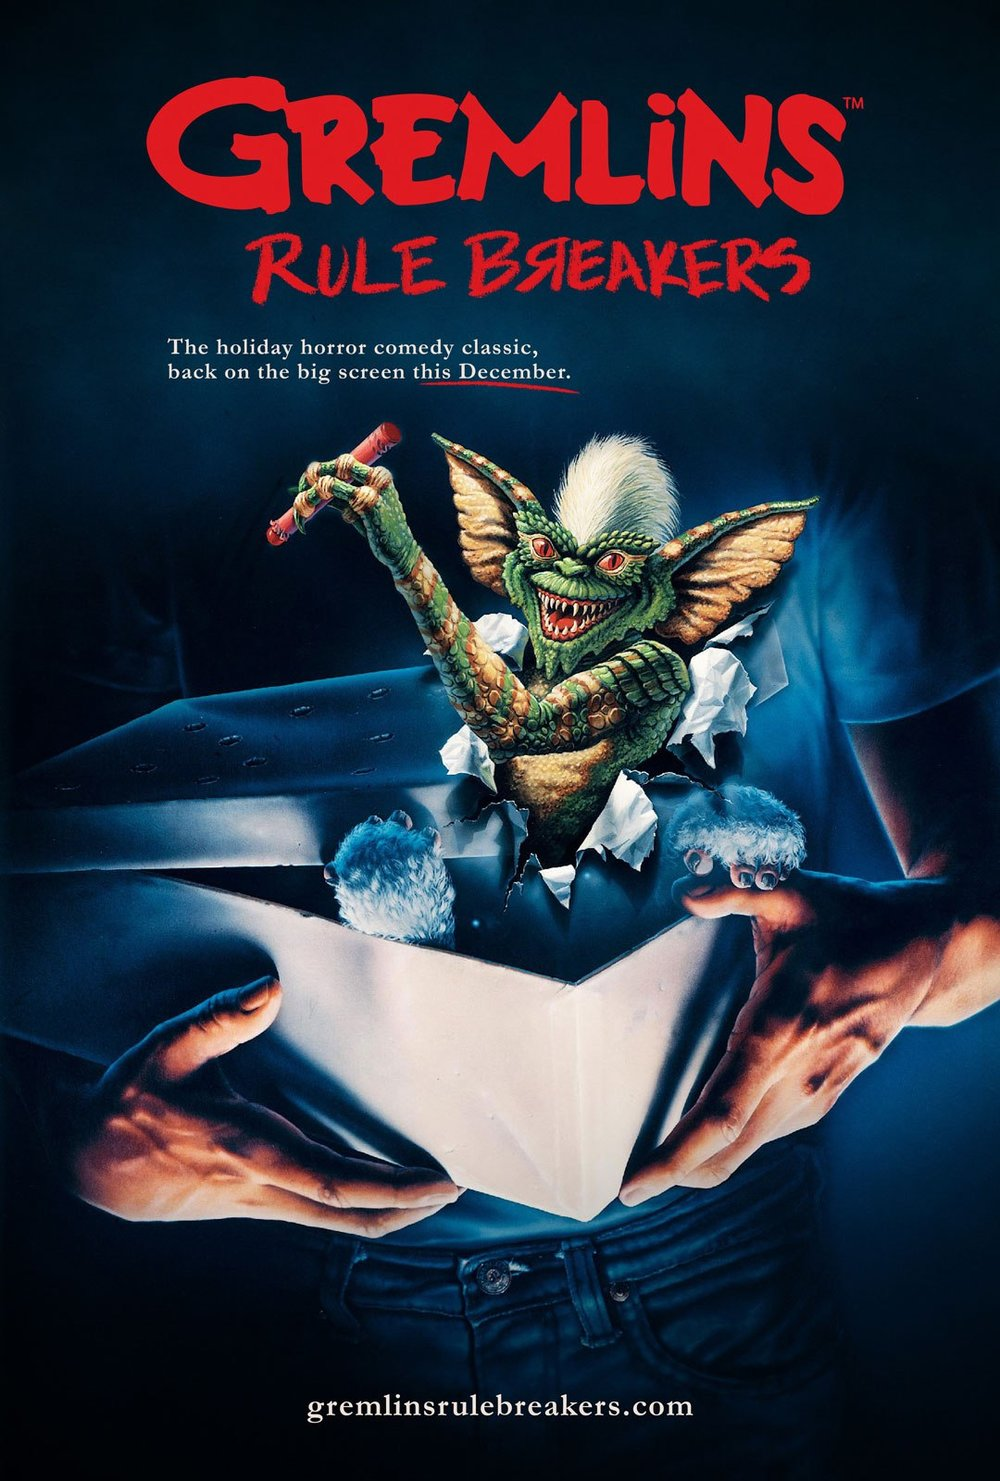 gremlins-is-being-re-released-in-theaters-in-december1